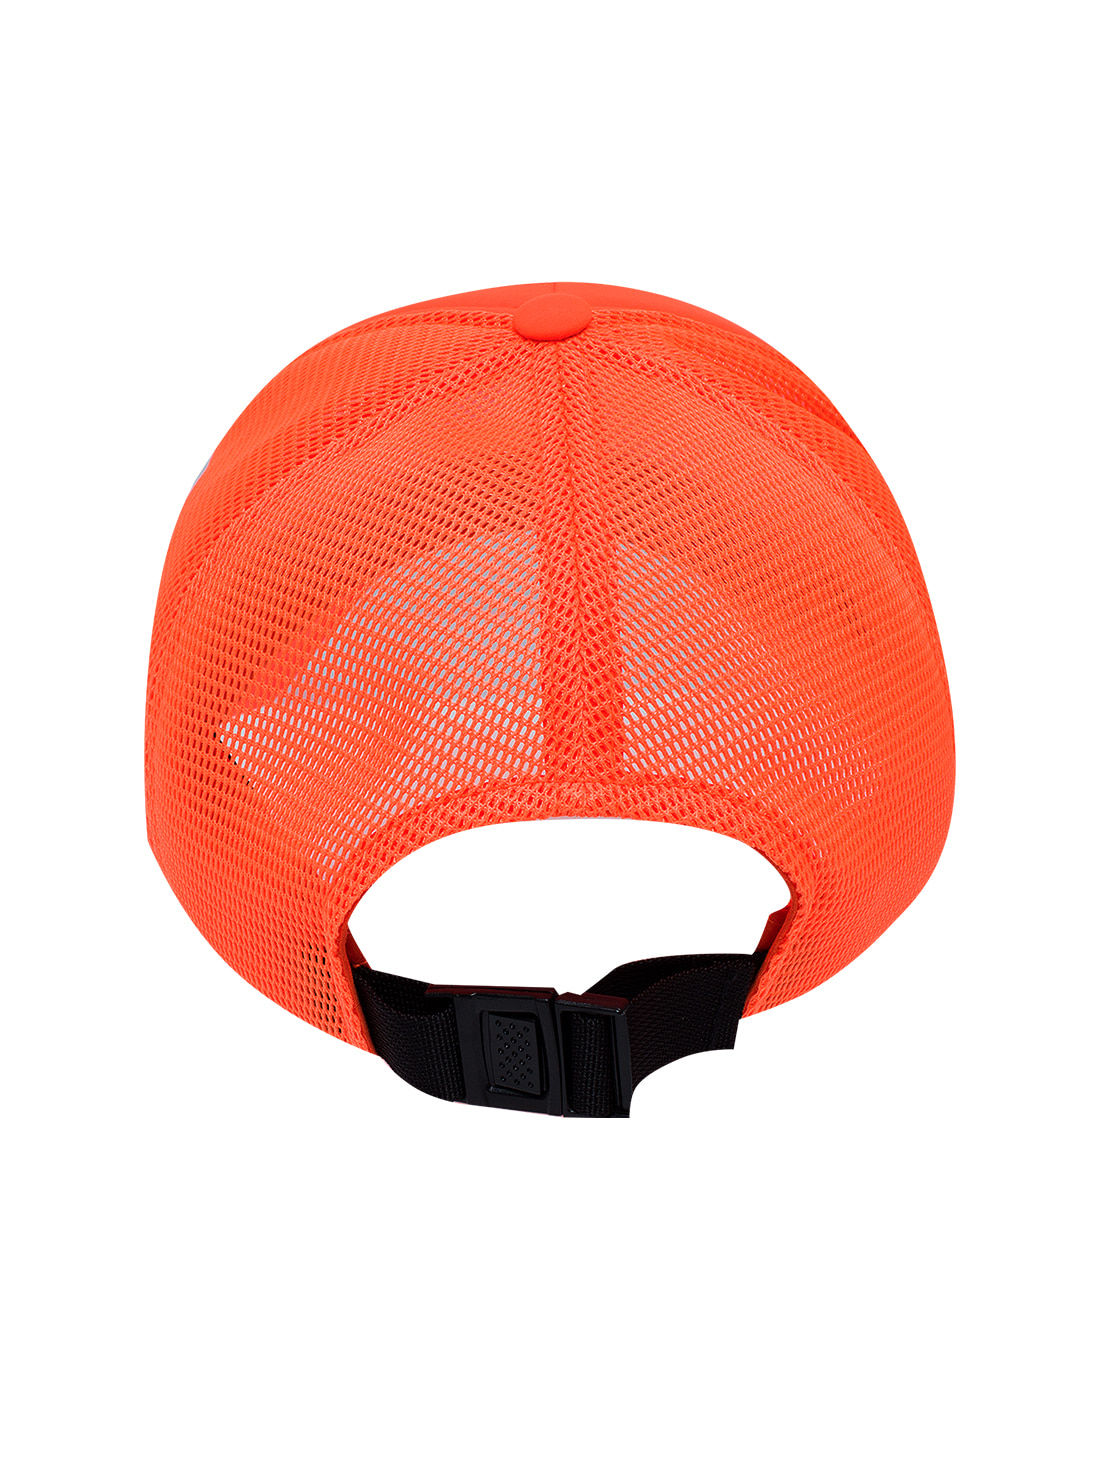 GOALSTUDIO MC TRUCKER CAP - ORANGE